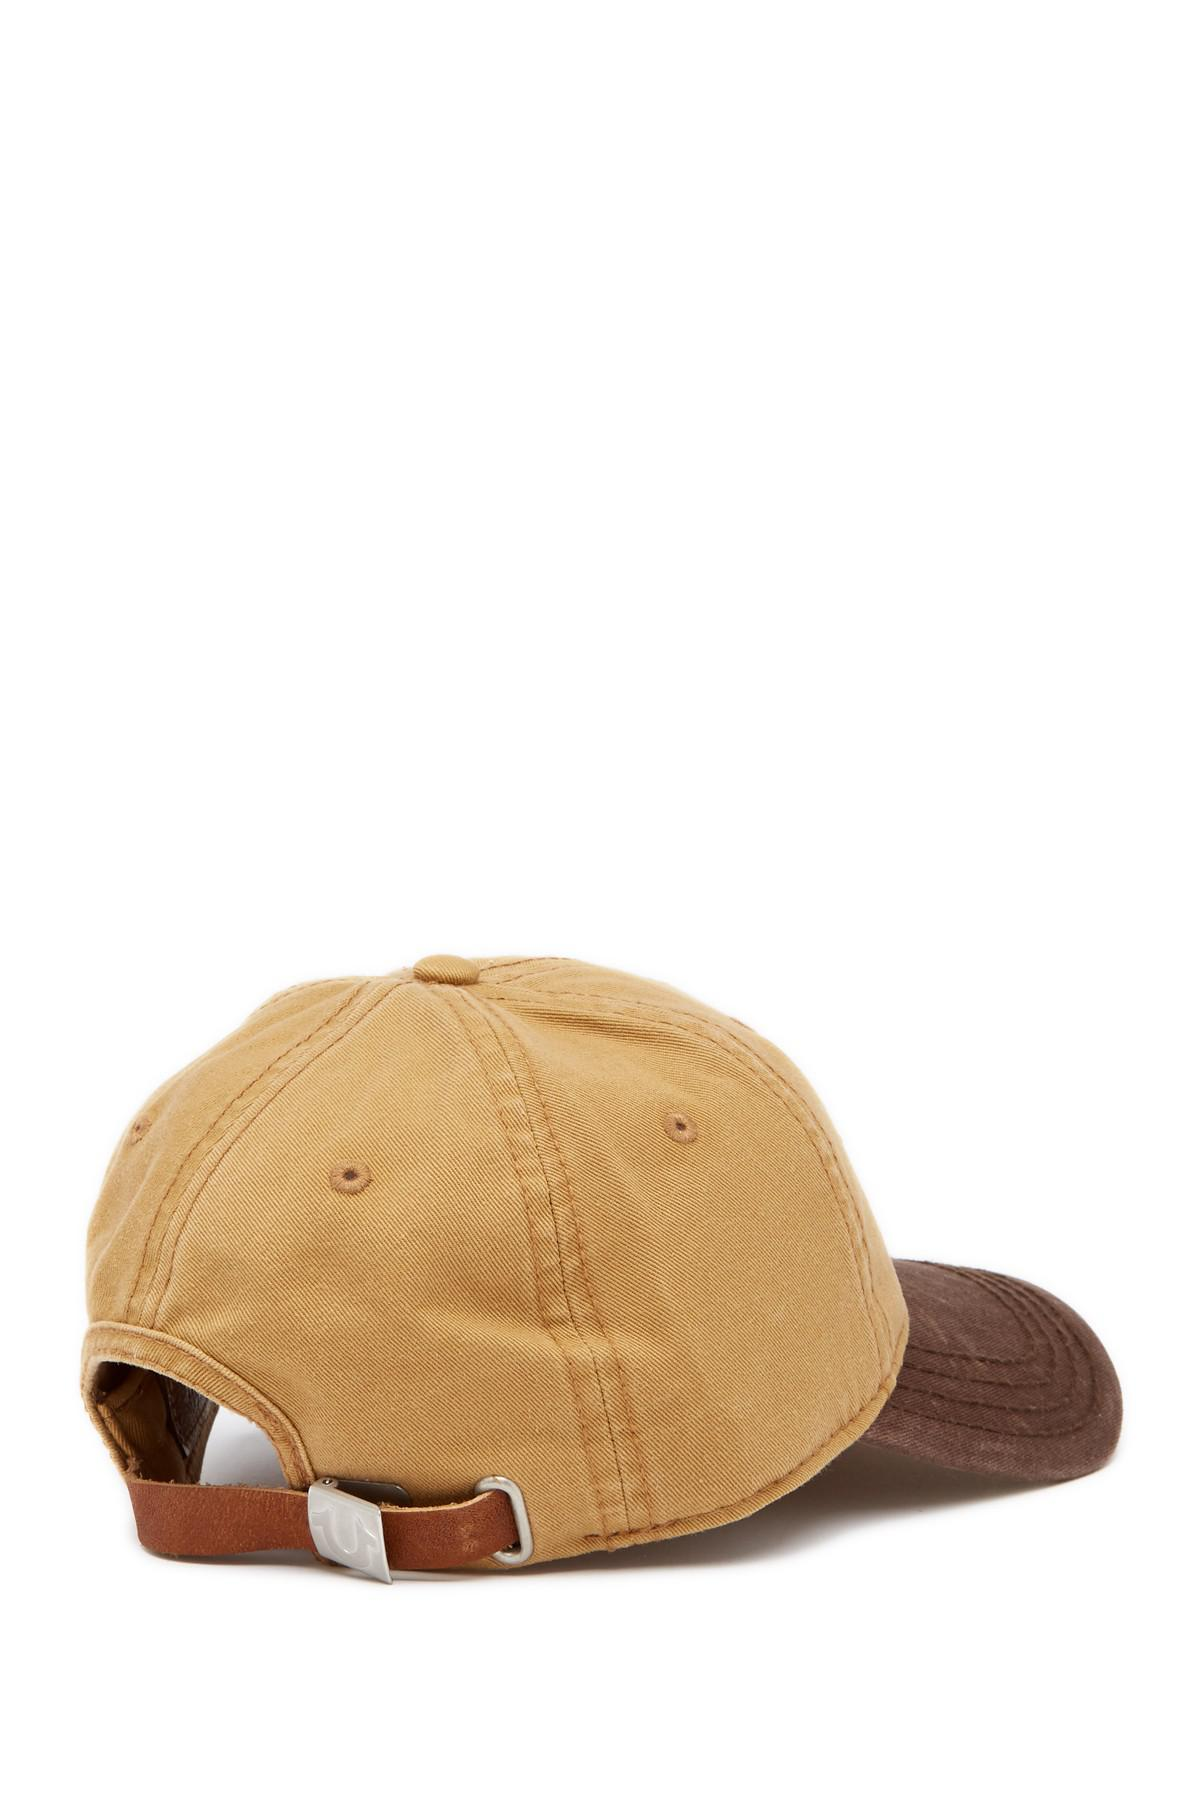 Lyst - True Religion Embroidered Buddha Baseball Cap in Brown for Men 24ecb6f43a8e